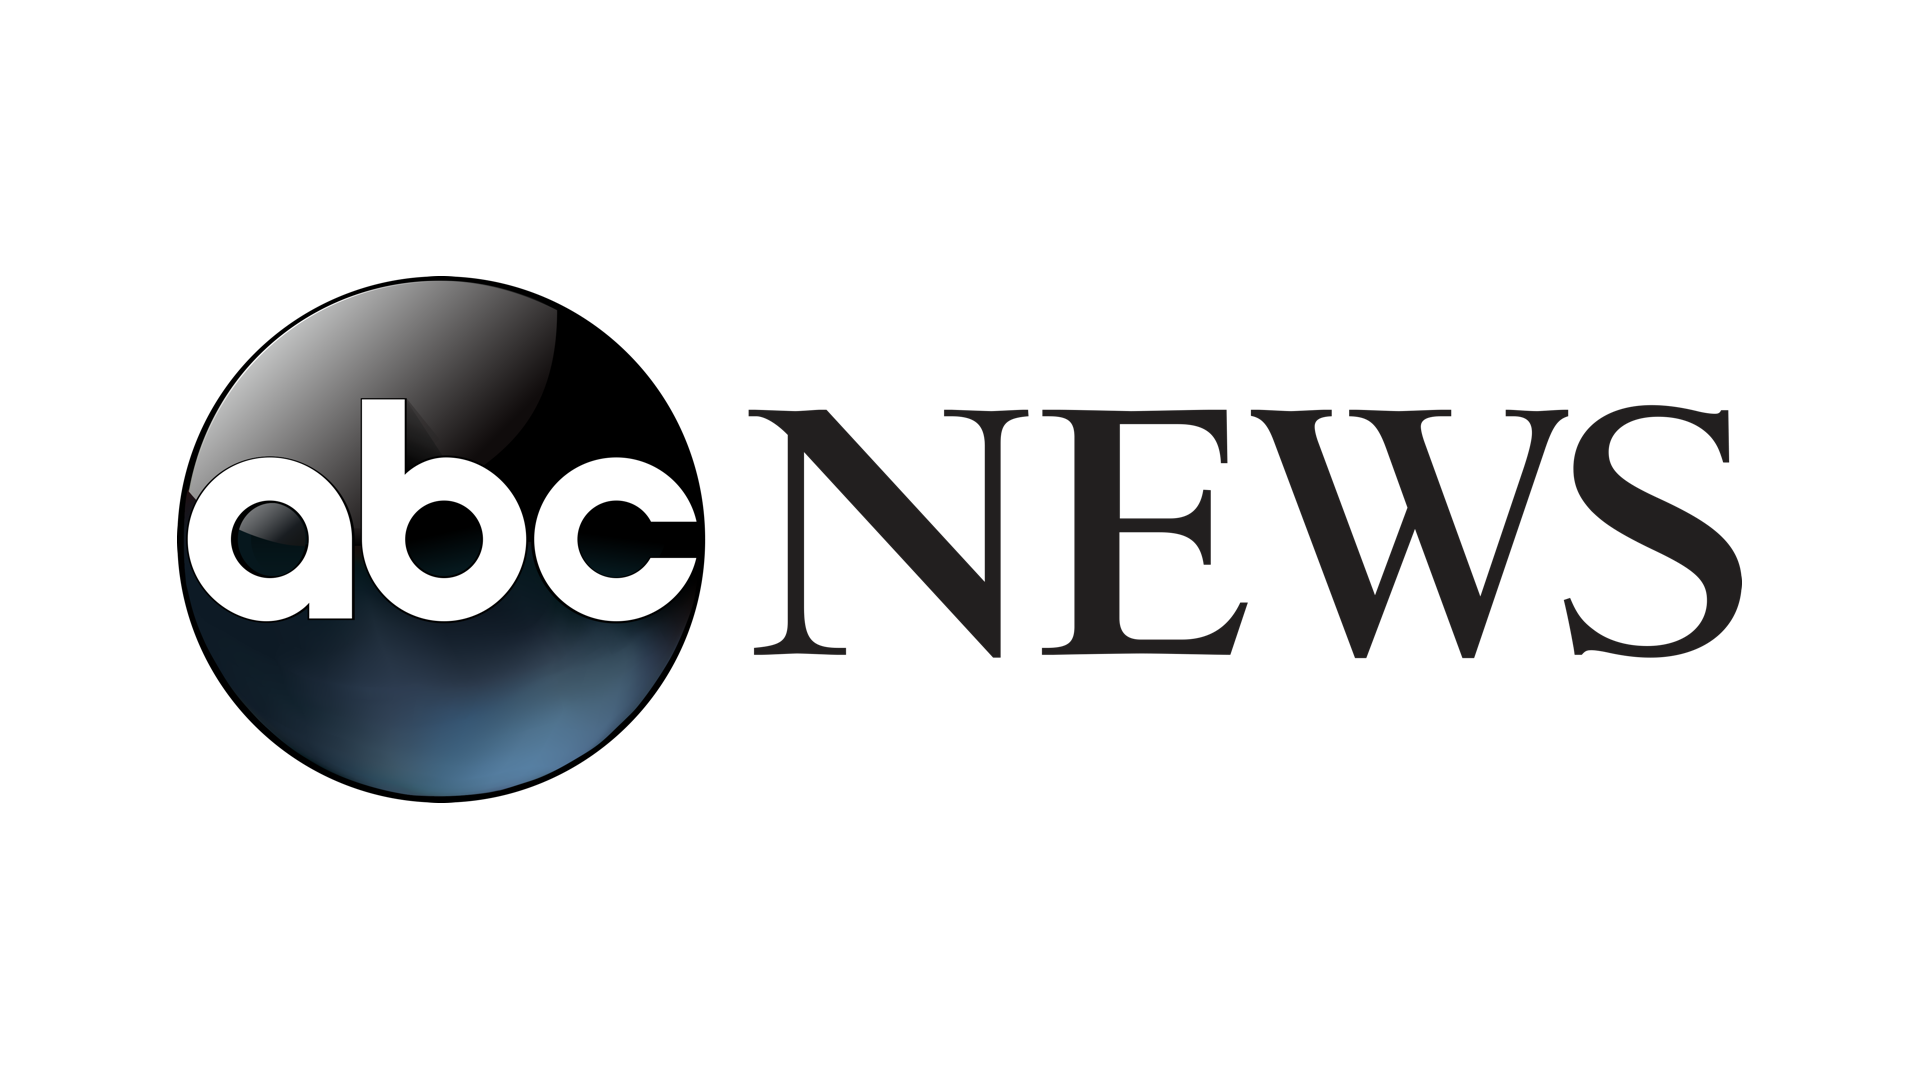 abc-news-media-png-logo-7